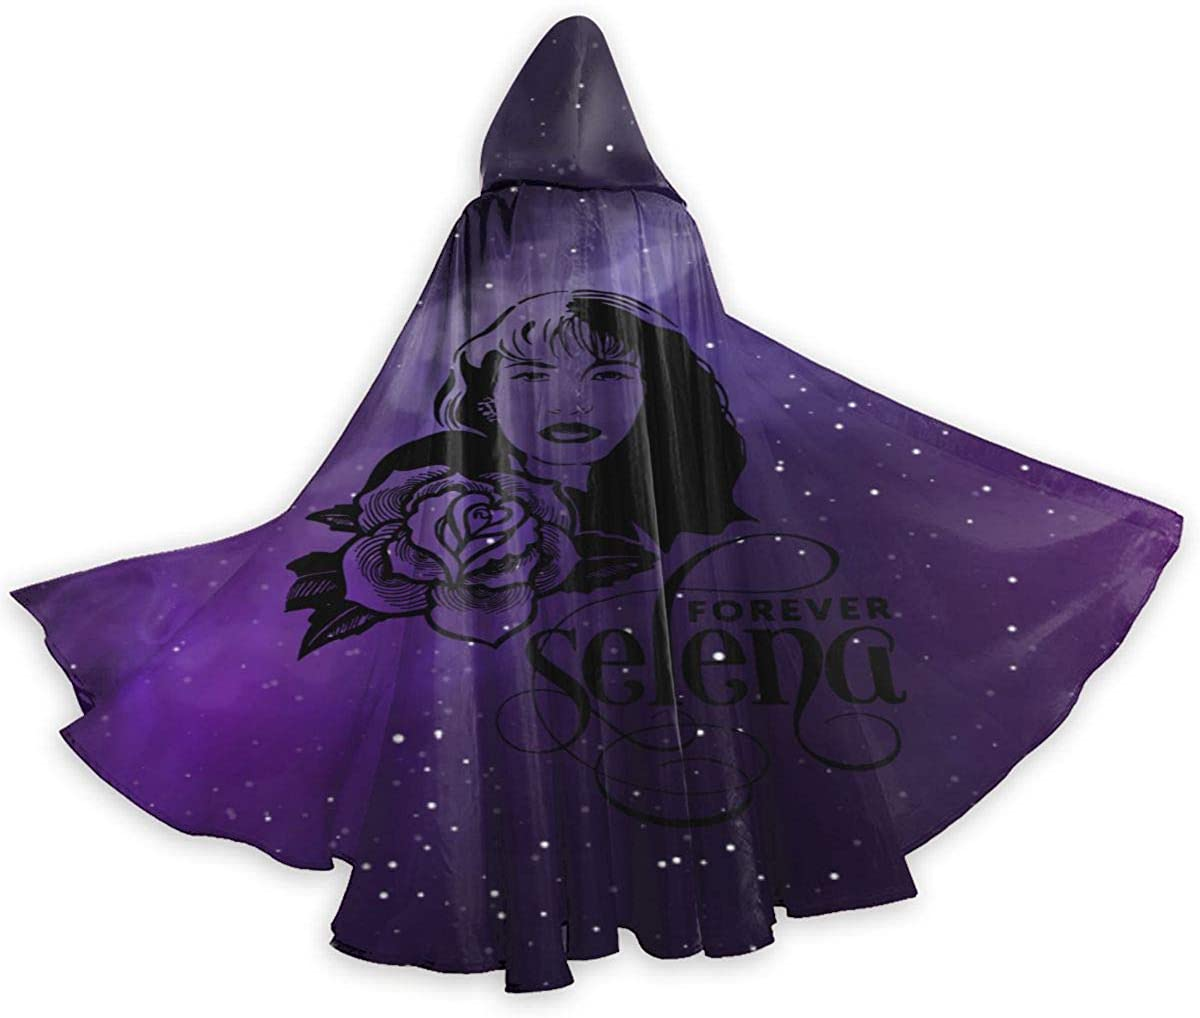 Shxjdthafa Selena Quintanilla Youth Adult Women Man Unisex Costumes Capes Cloak with Hood for Halloween Party